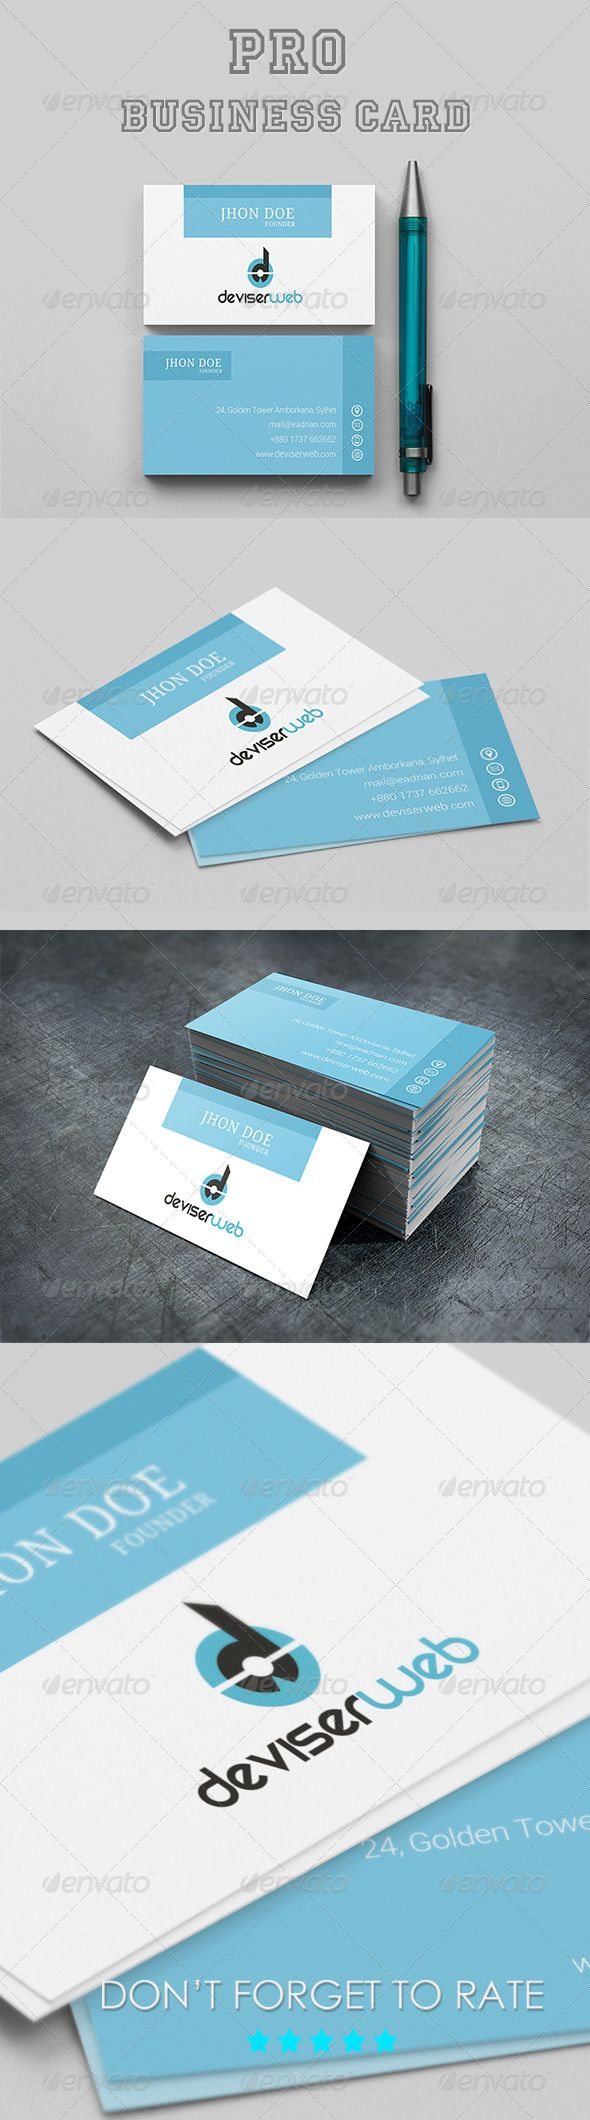 255 best Business Card Templates images on Pinterest   Fonts ...